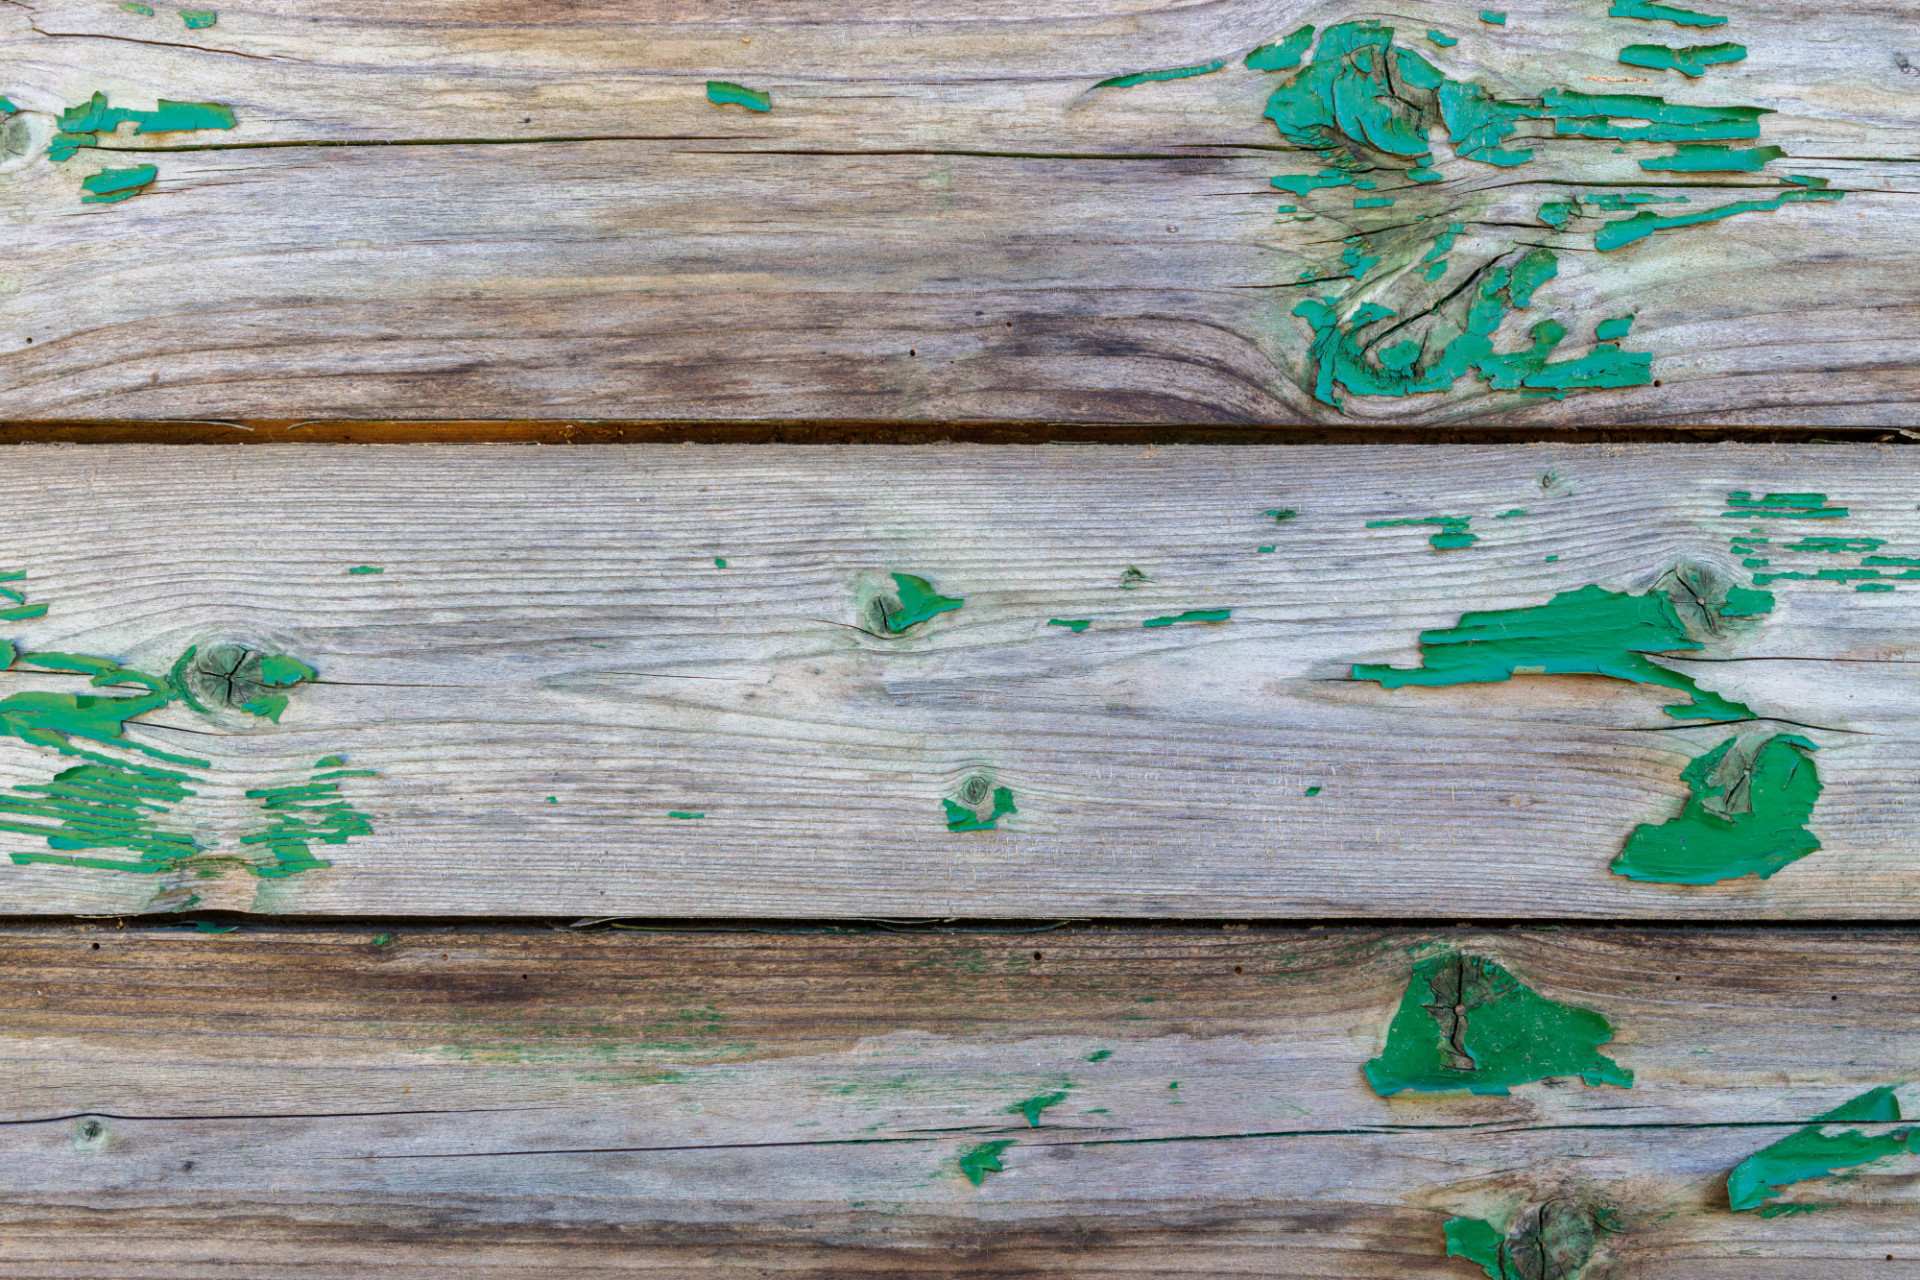 Wooden wall texture with peeling green colour